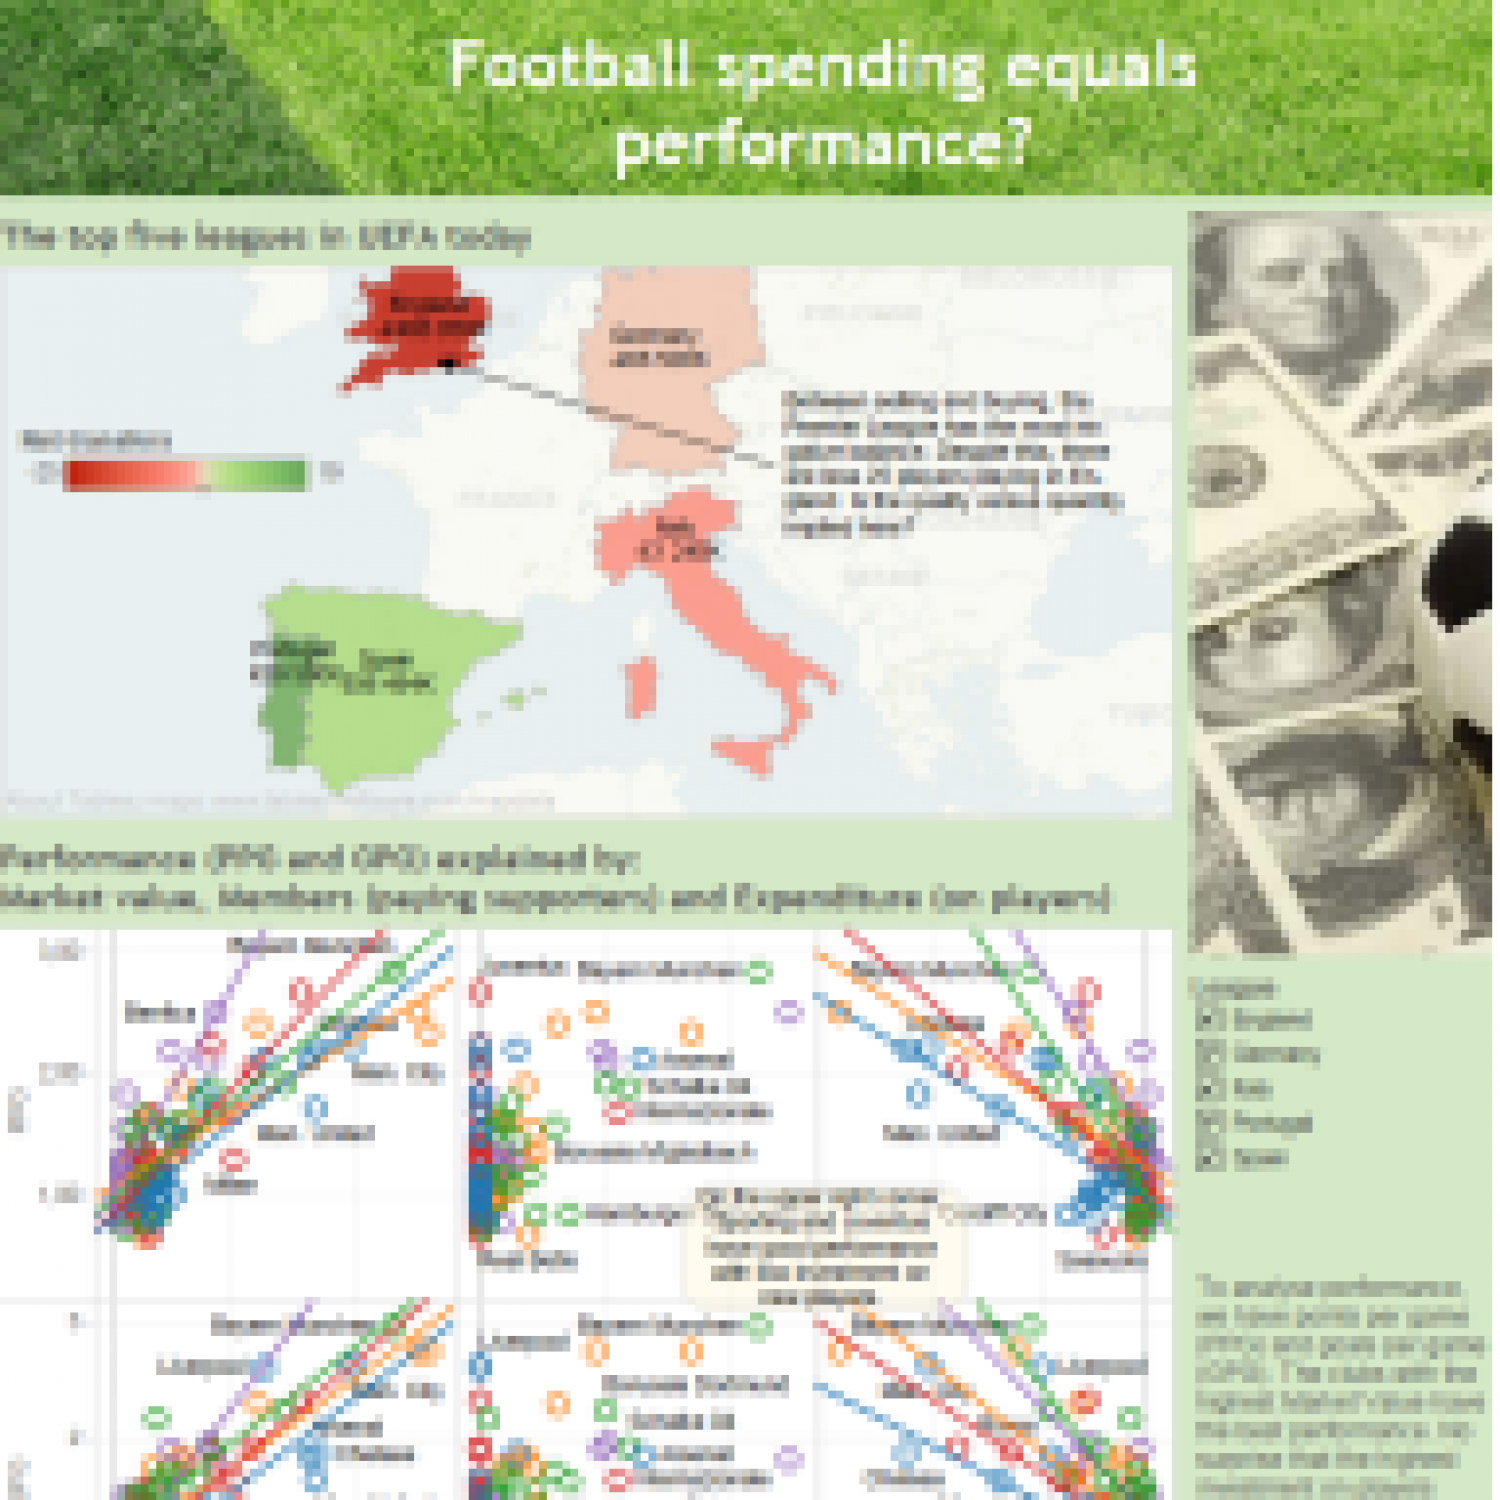 Football World Infographic